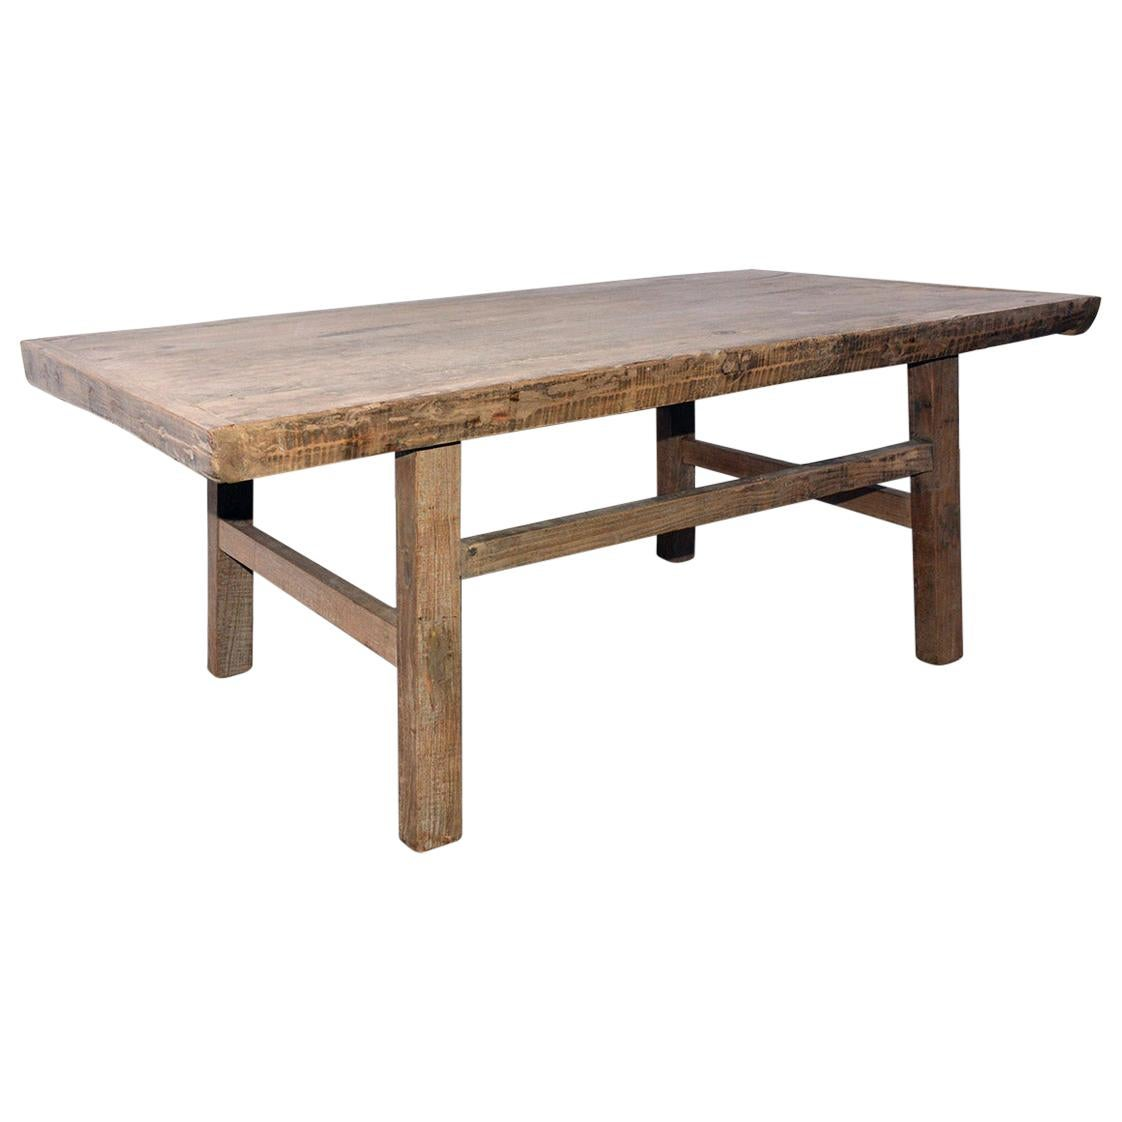 Rustic Asian Coffee Table or Bench